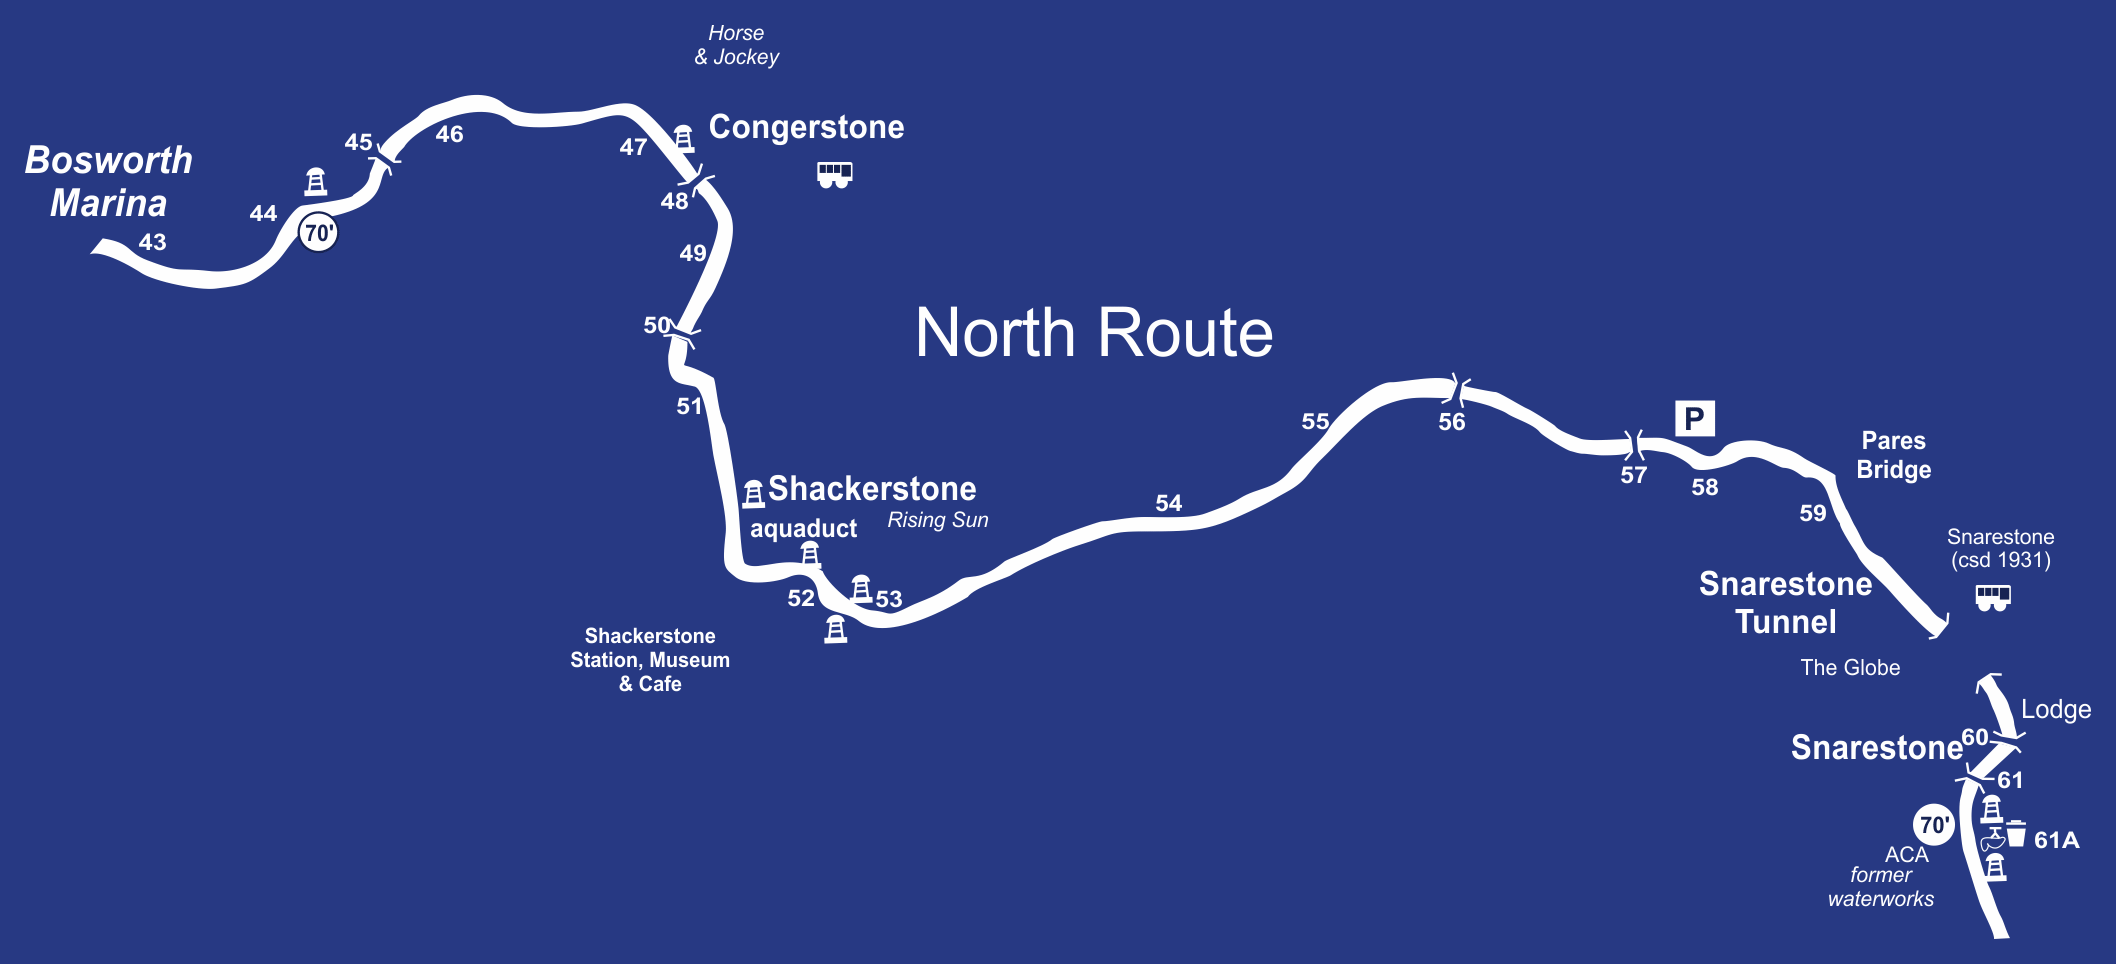 Canal Boat Hire Cruising Routes - North Route